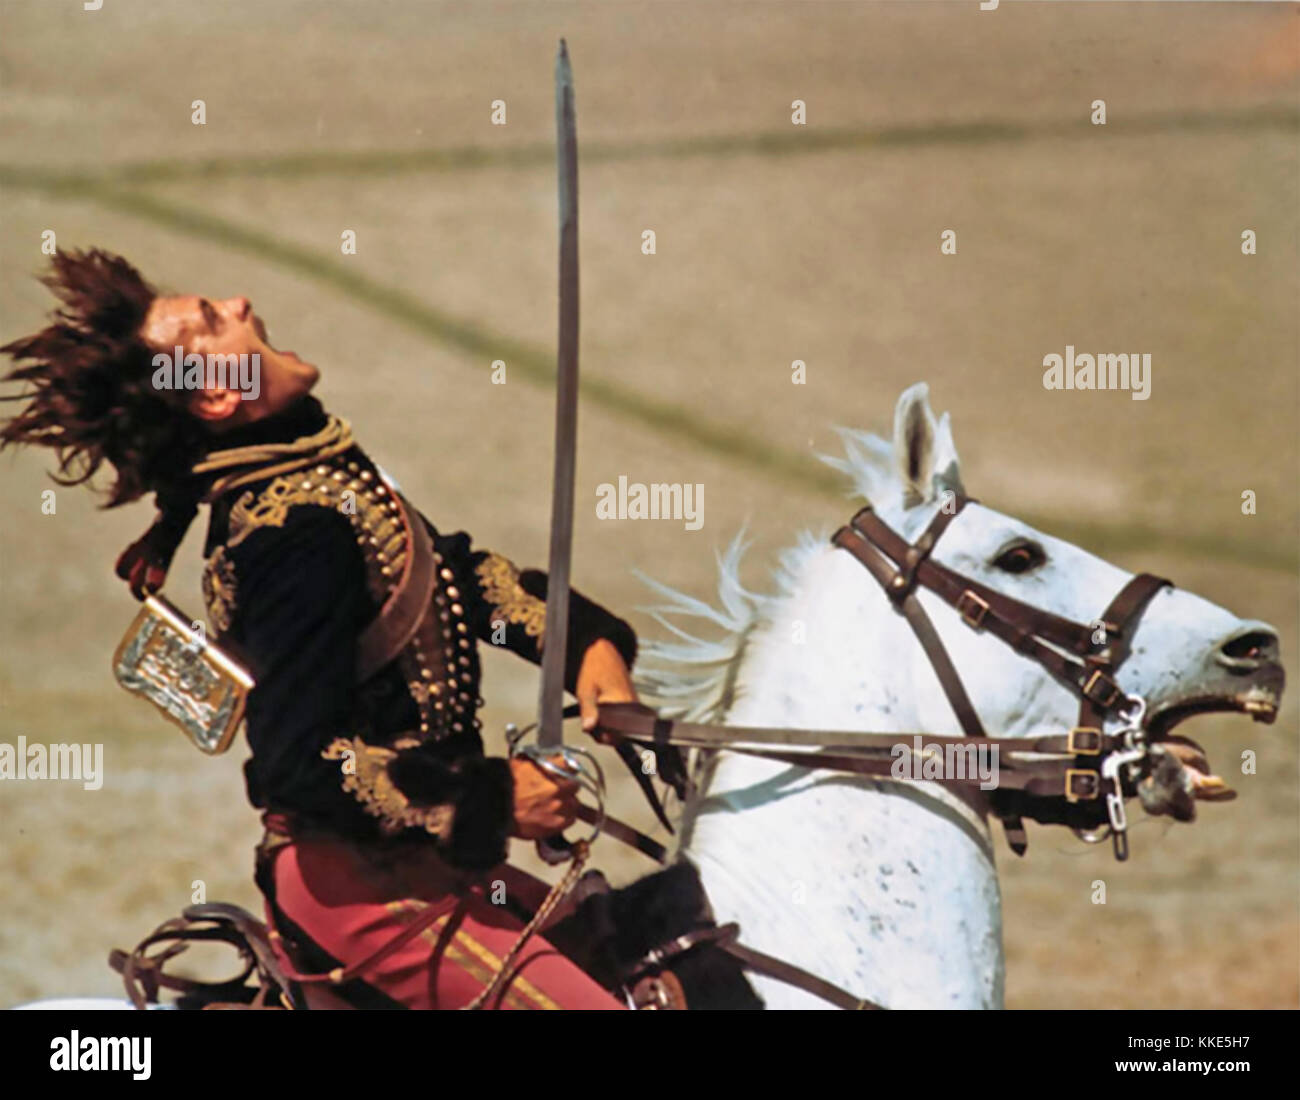 La charge de la brigade légère 1968 United Artists film avec David hemmings le capitaine Louis nolan Photo Stock